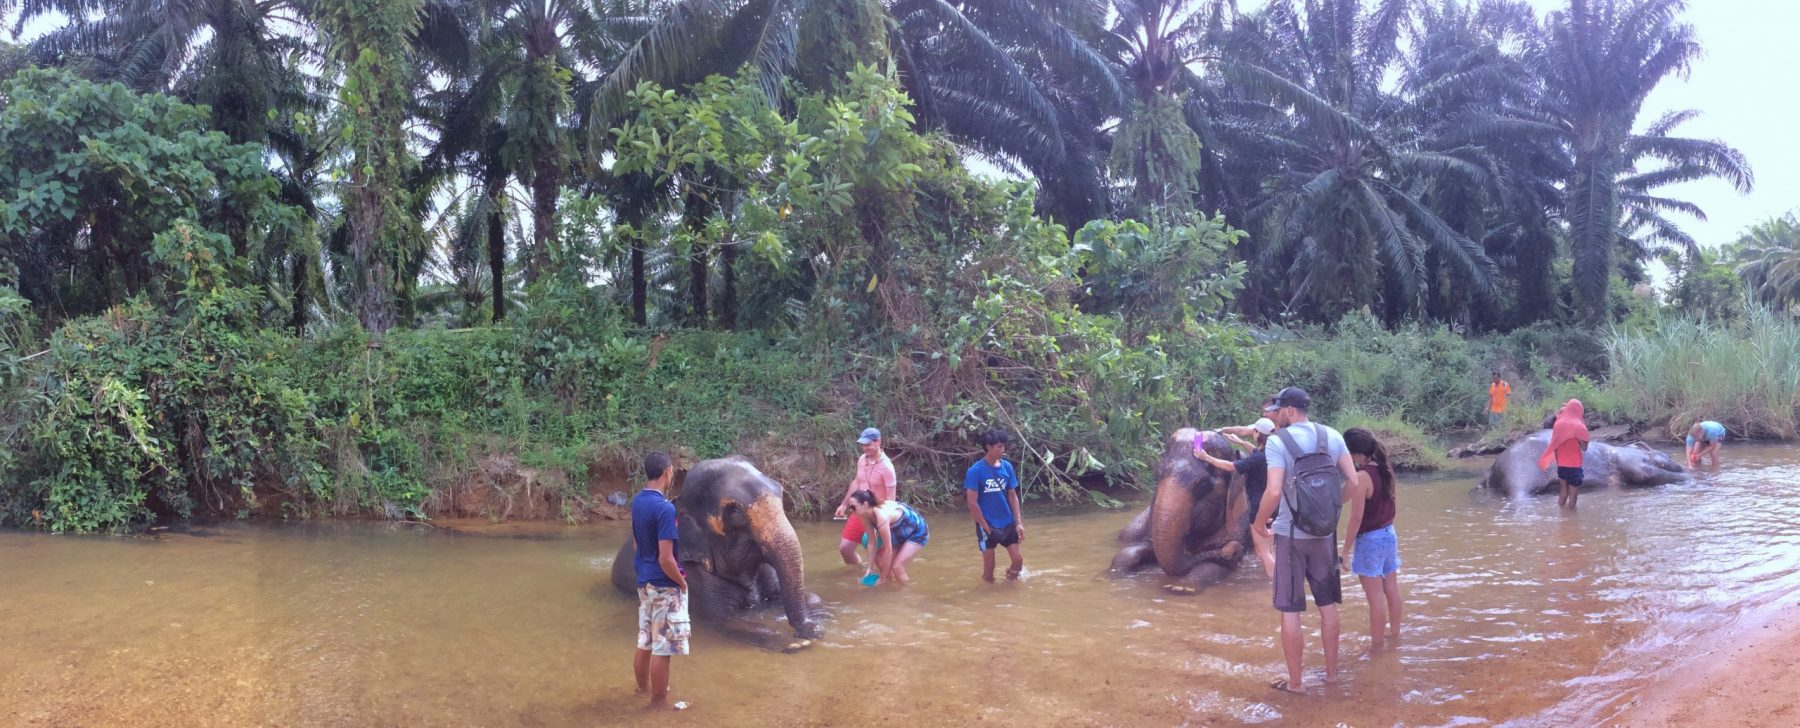 Elephants bathing in a river, being washed by tourists in Thailand